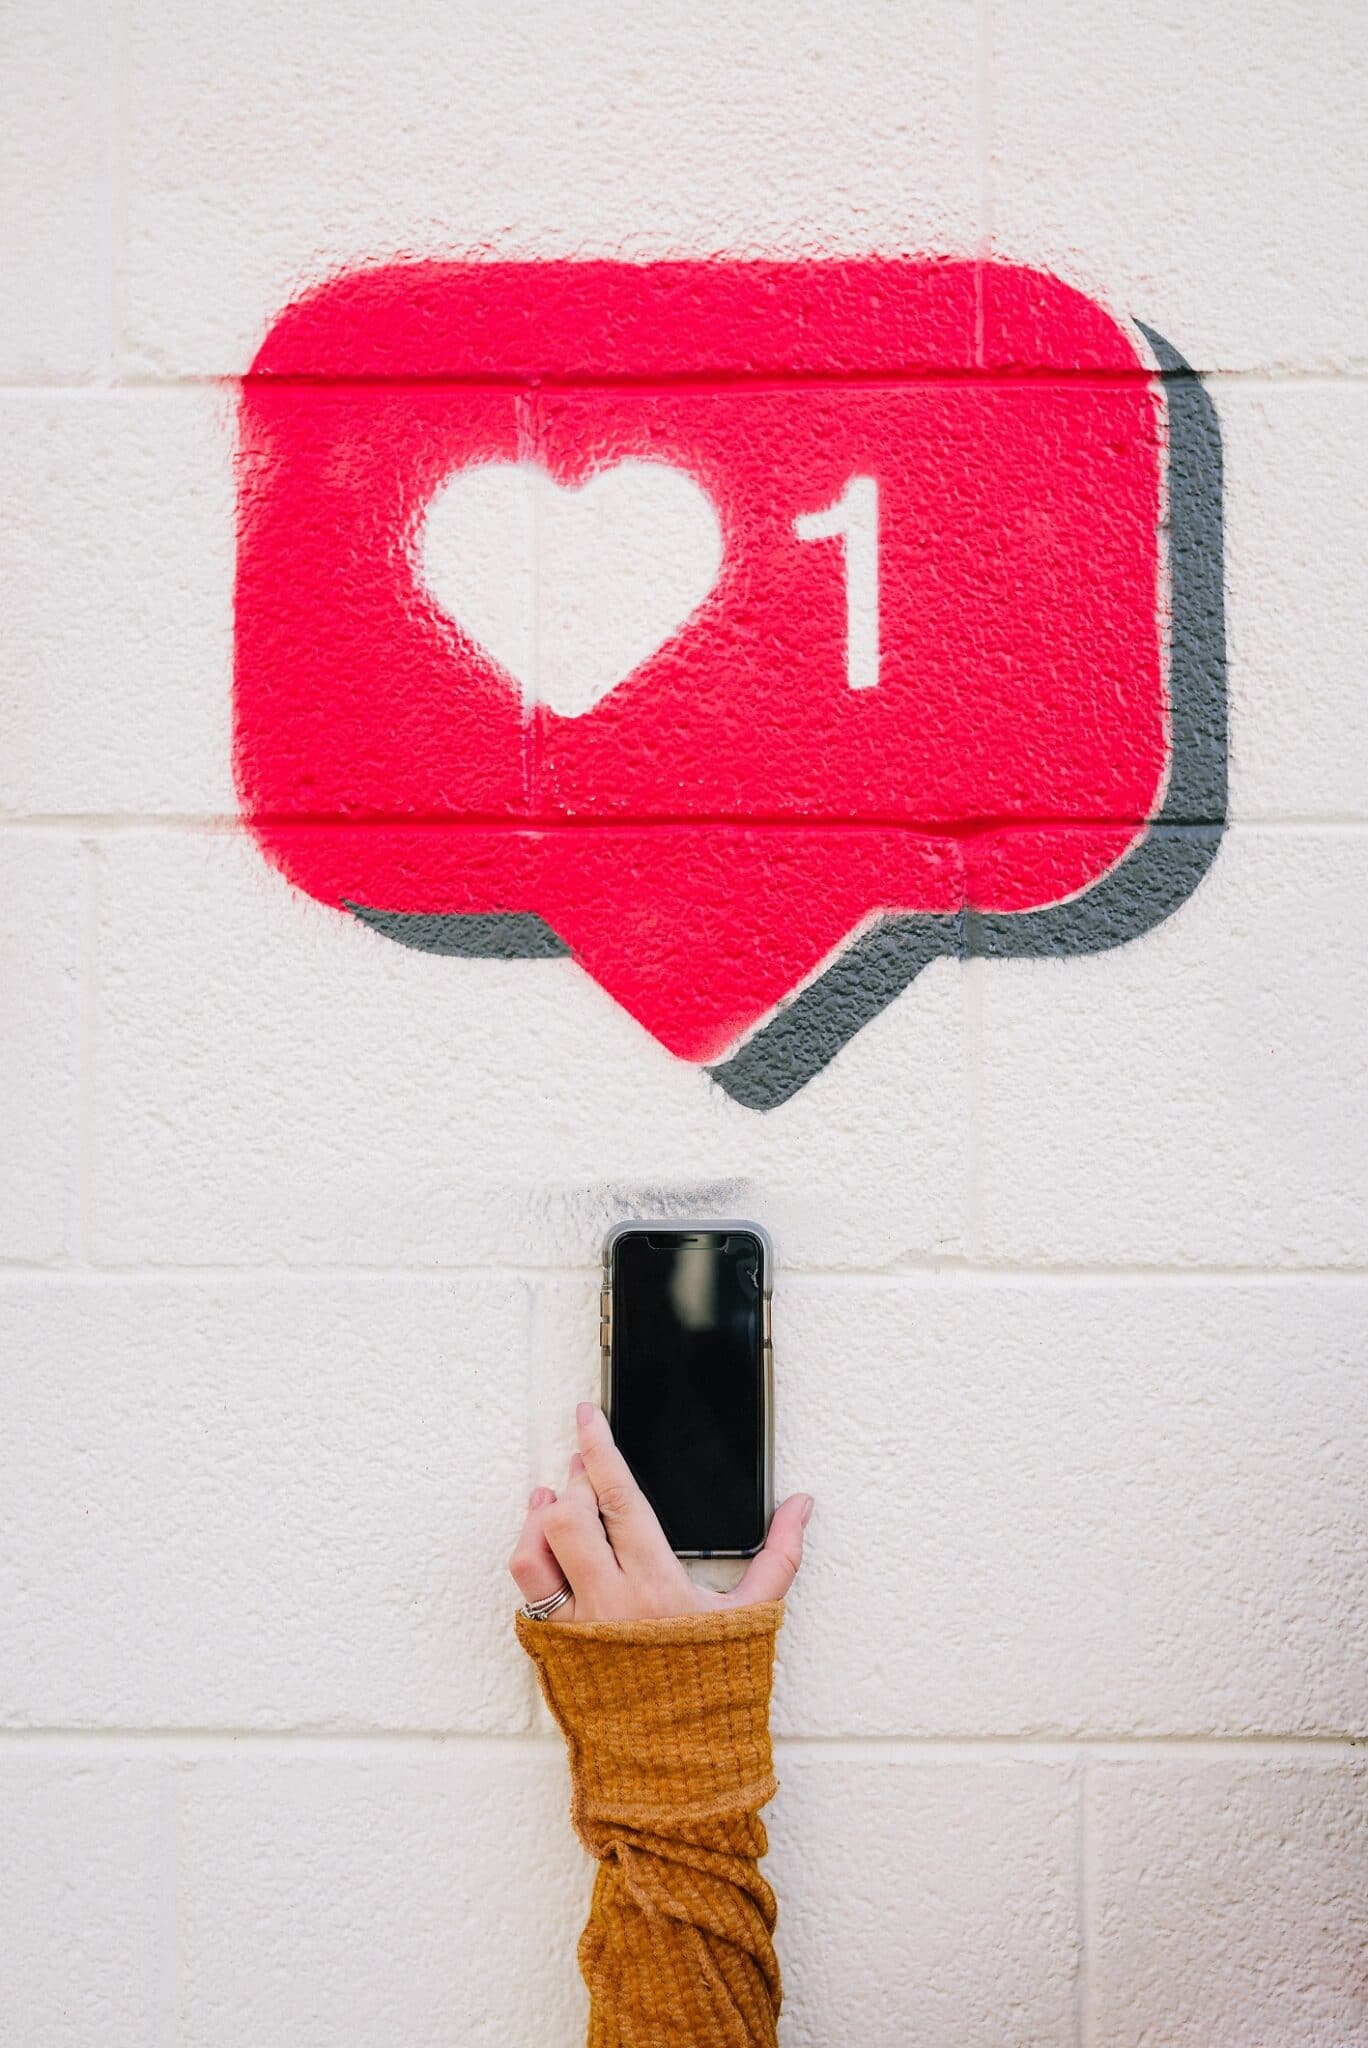 A smartphone with street art Instagram heart above it.